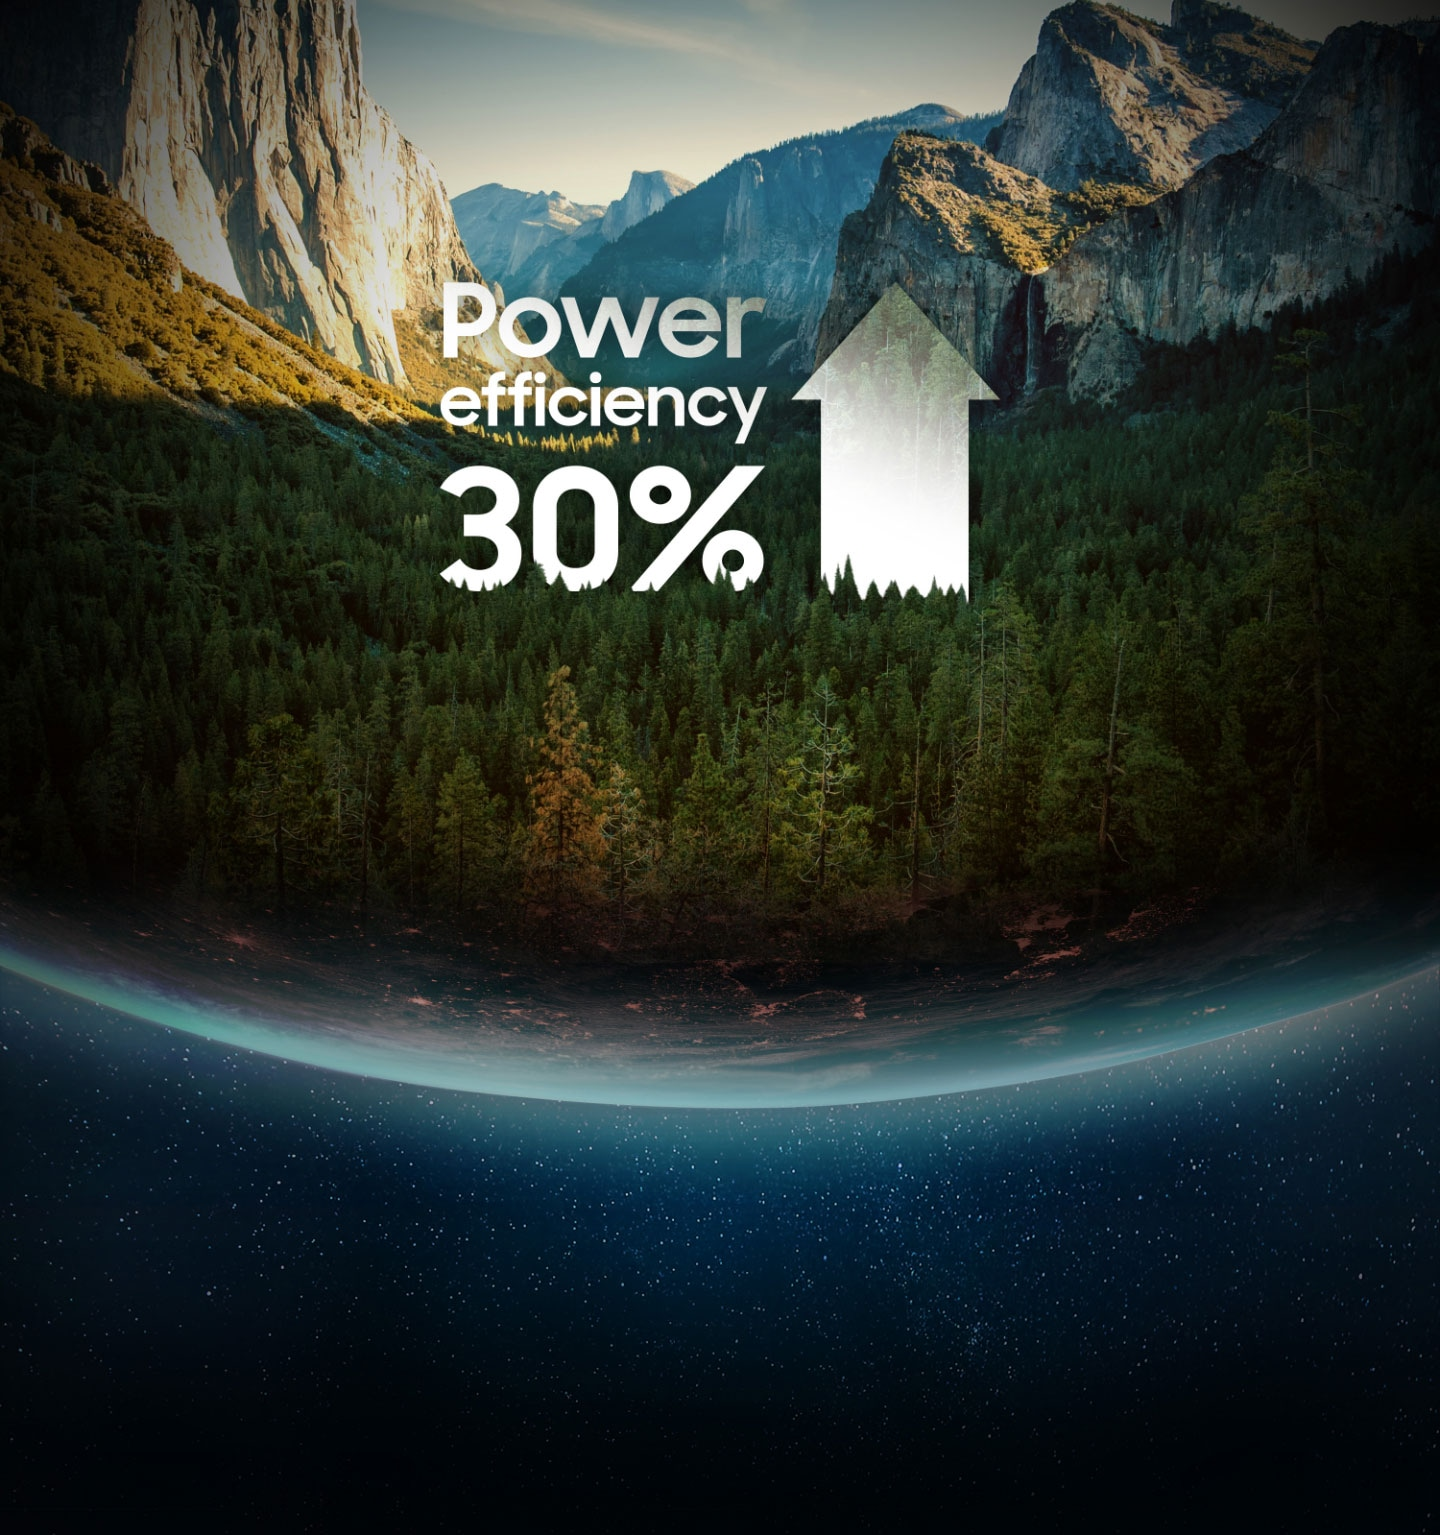 An illustrative image of 'up to Power efficiency 30%' typography against an image of trees, mountain in the earth.